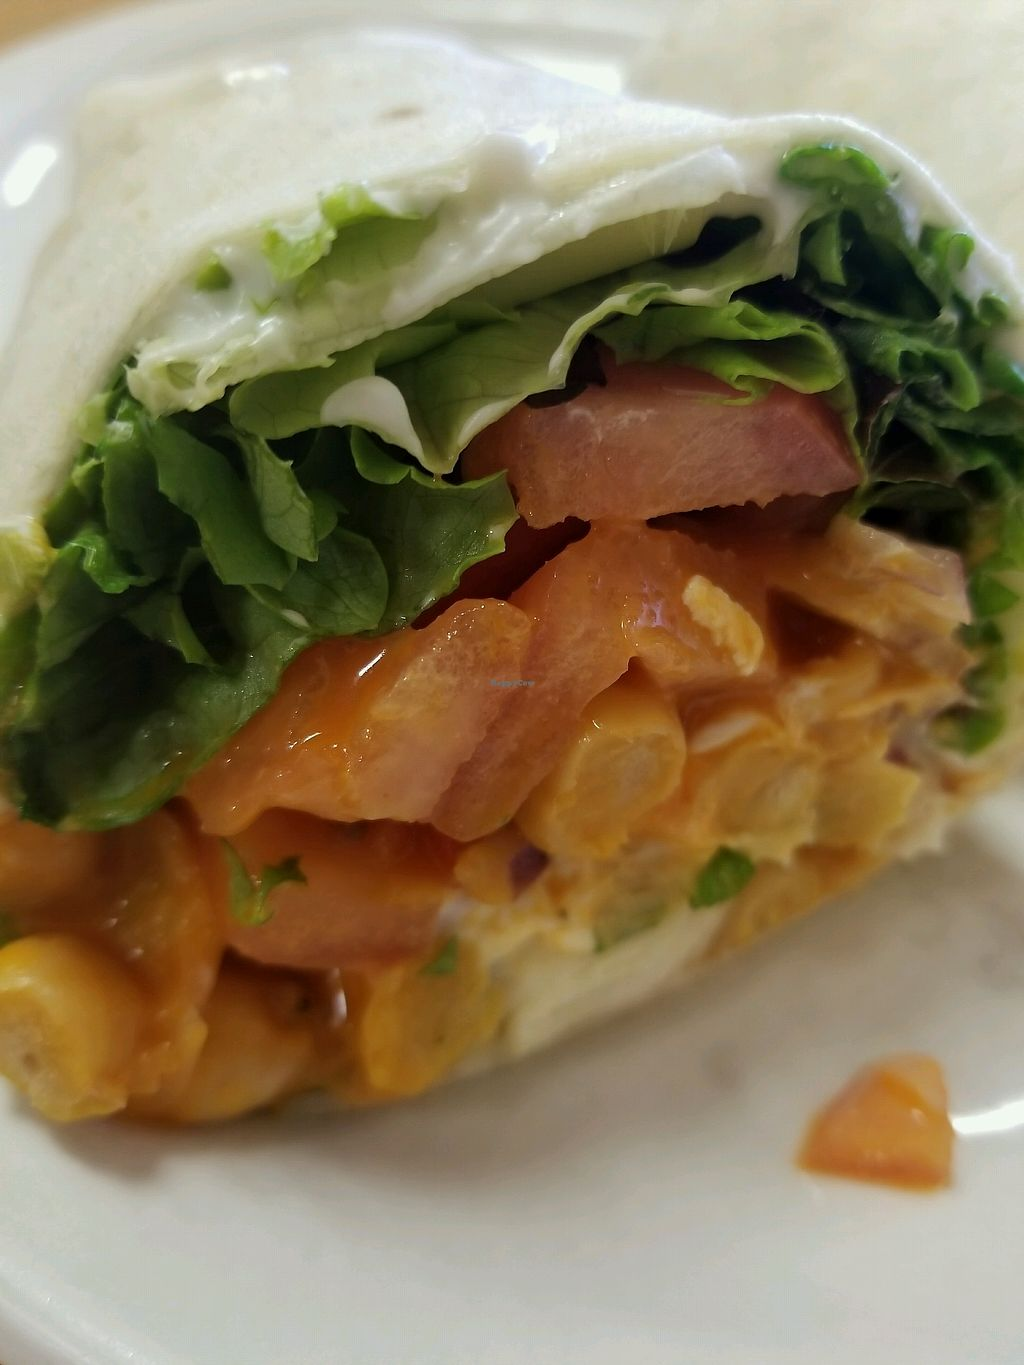 """Photo of Pizza Mia  by <a href=""""/members/profile/MichaelBarootjian"""">MichaelBarootjian</a> <br/>buffalo chickpea wrap with vegan mayo!!! <br/> February 15, 2018  - <a href='/contact/abuse/image/108250/359732'>Report</a>"""